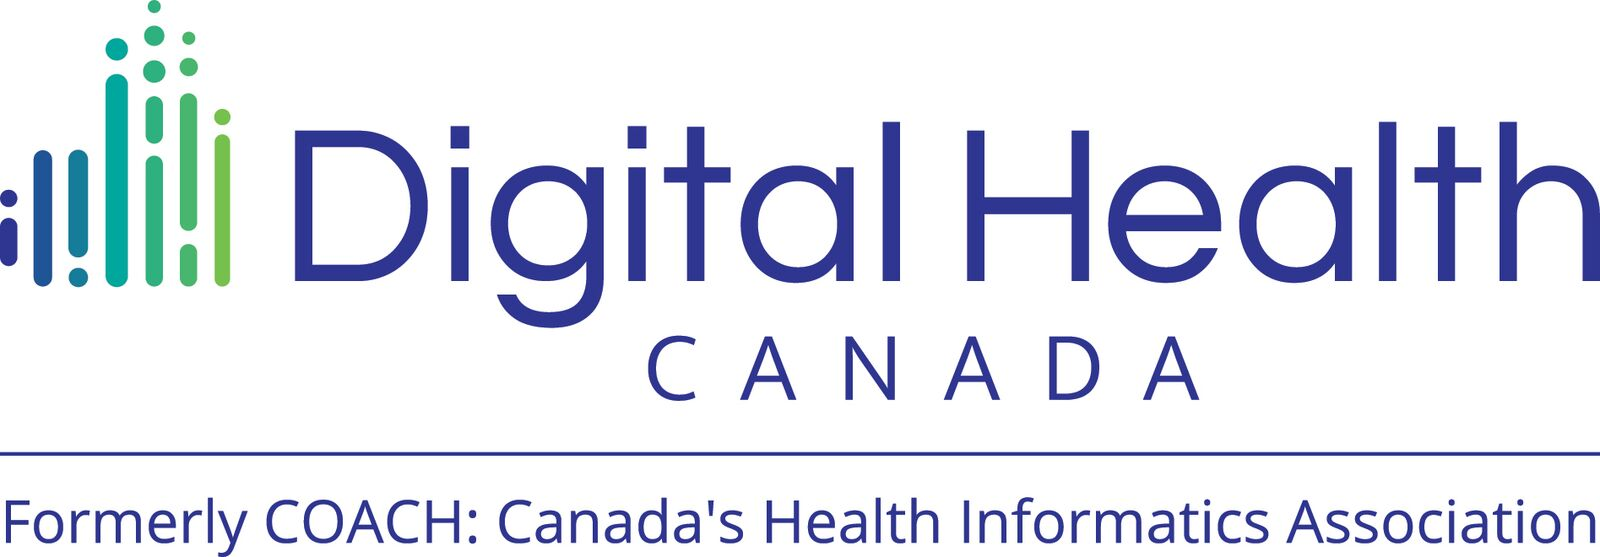 Digital health logo